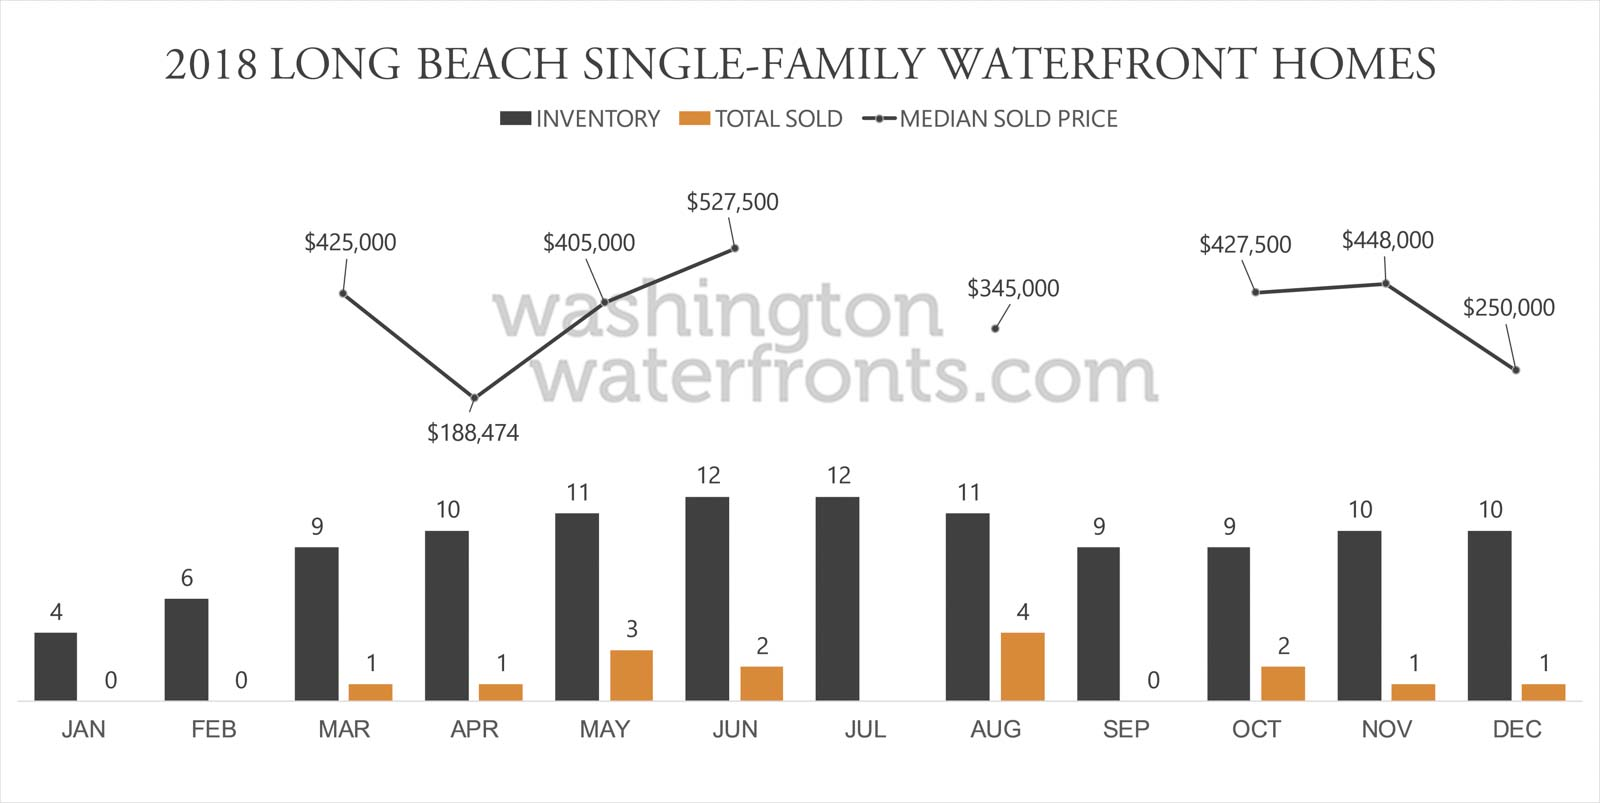 Long Beach Waterfront Inventory